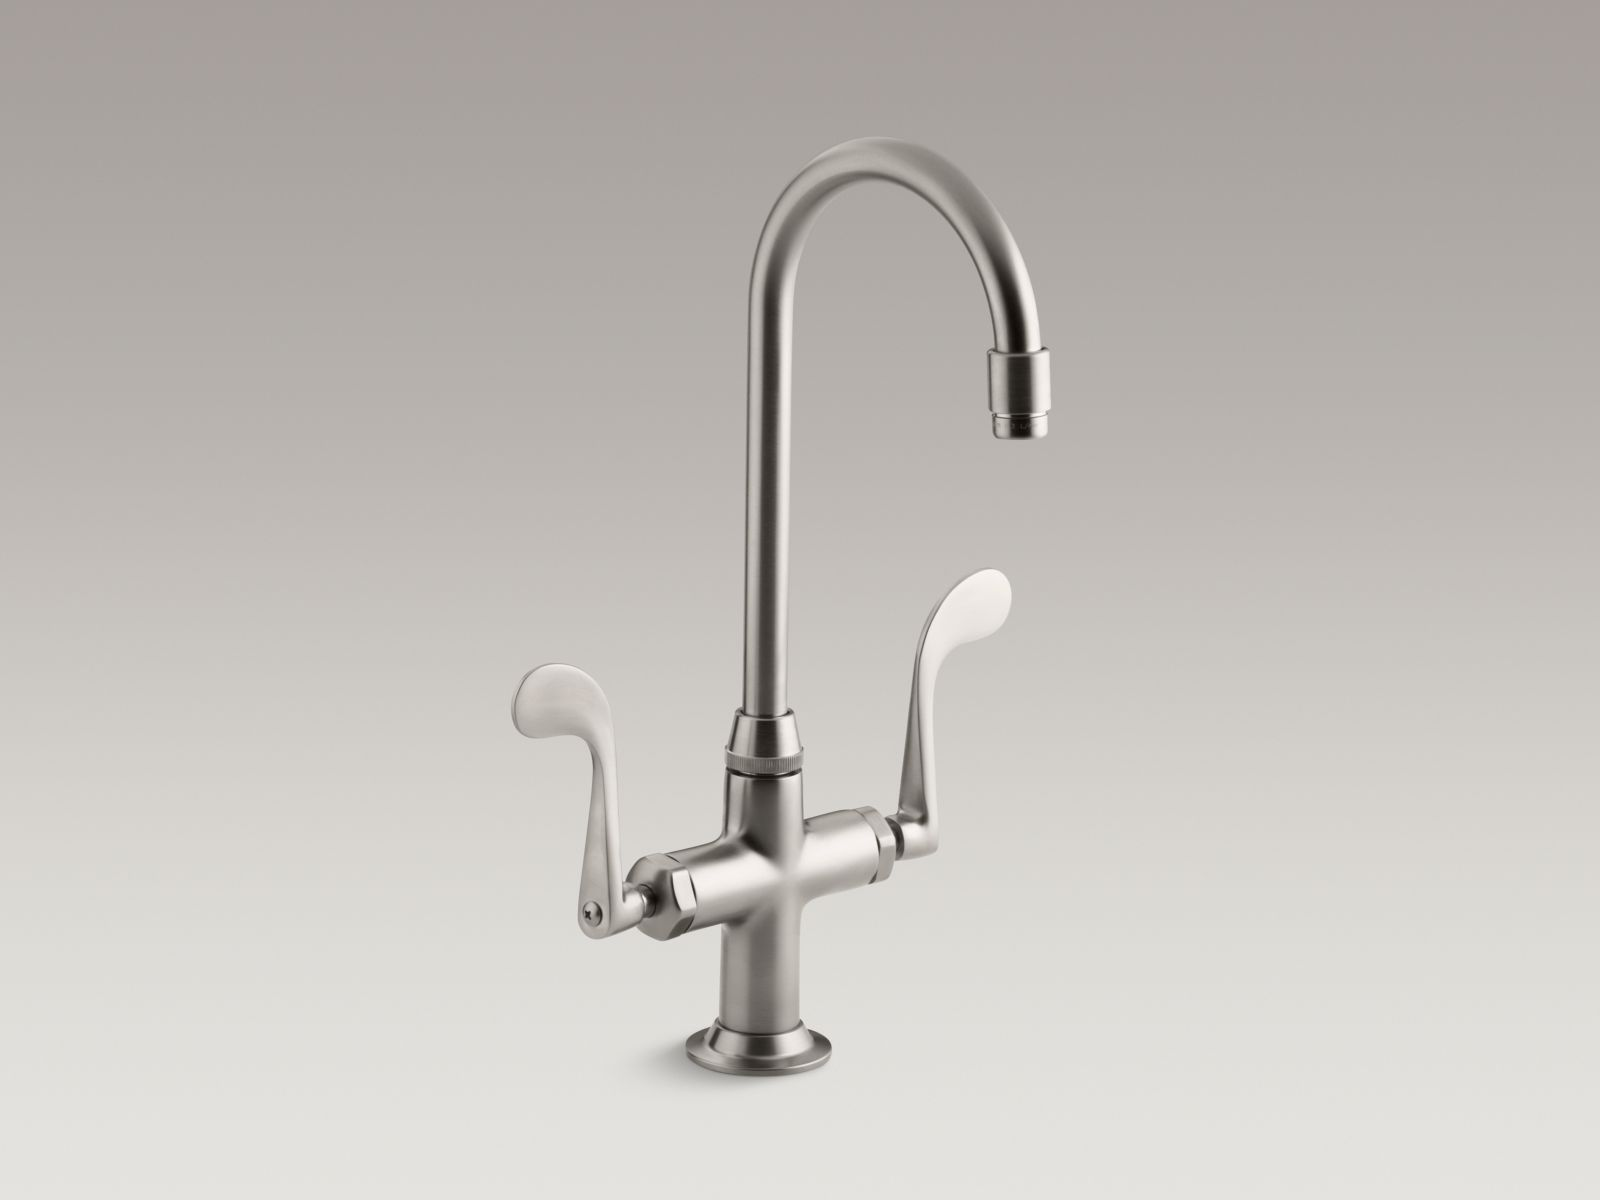 Kohler K-8761-VS Essex Single-hole Two-handle Bar Faucet with Wristblade Handles Vibrant Stainless